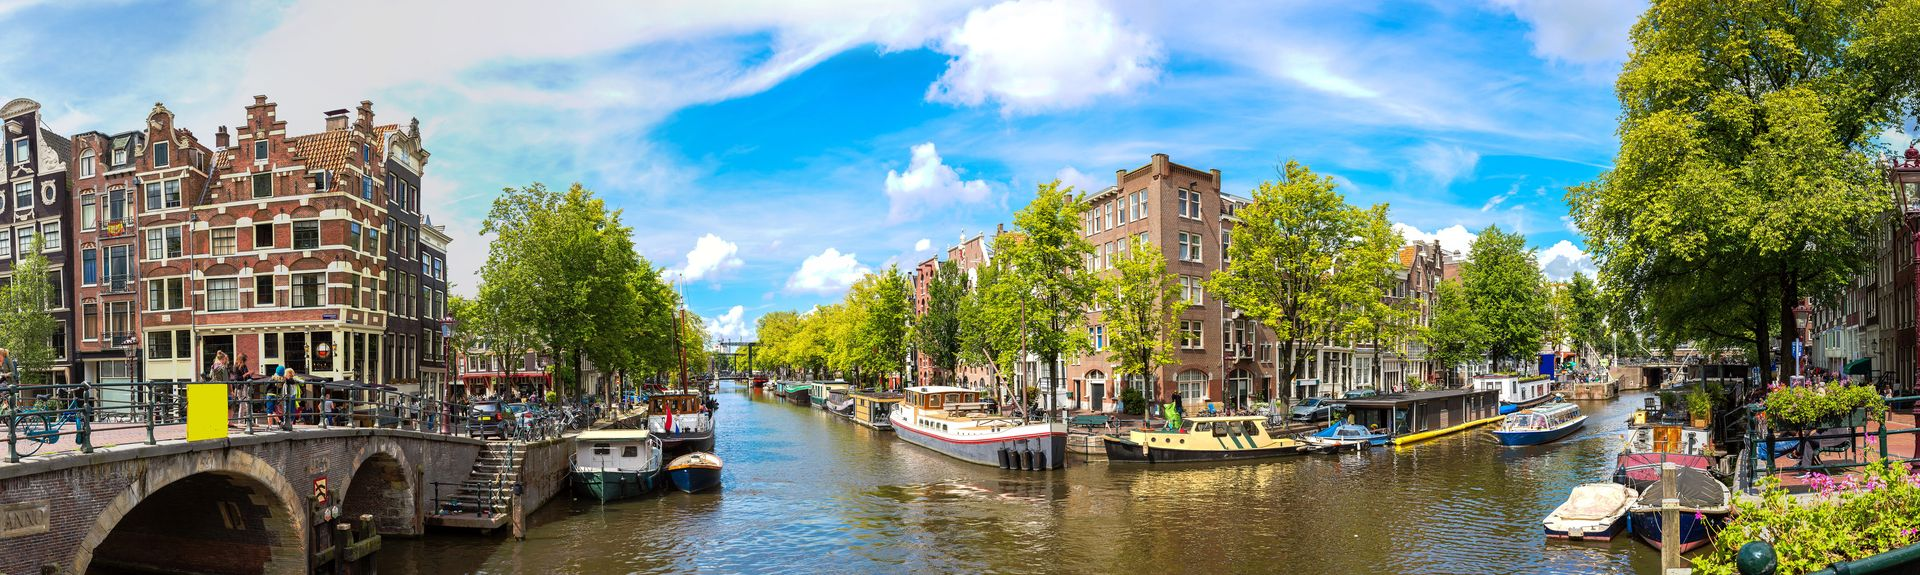 Amsterdã, Holanda do Norte, Holanda